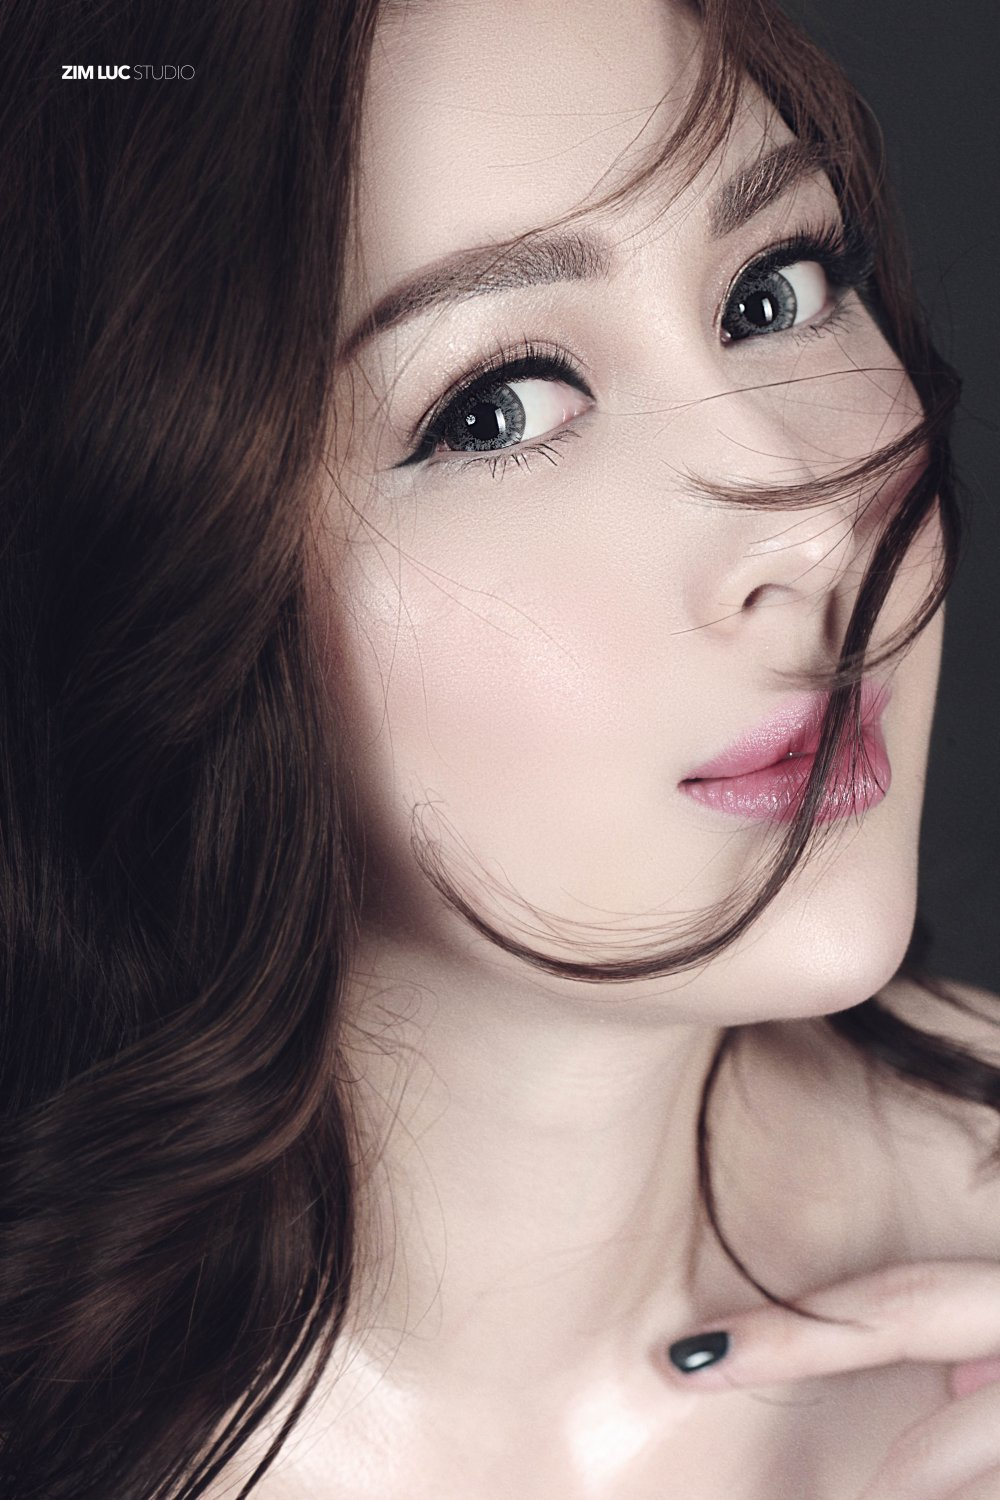 Vo Thanh Hien goi cam me dam long nguoi hinh anh 4